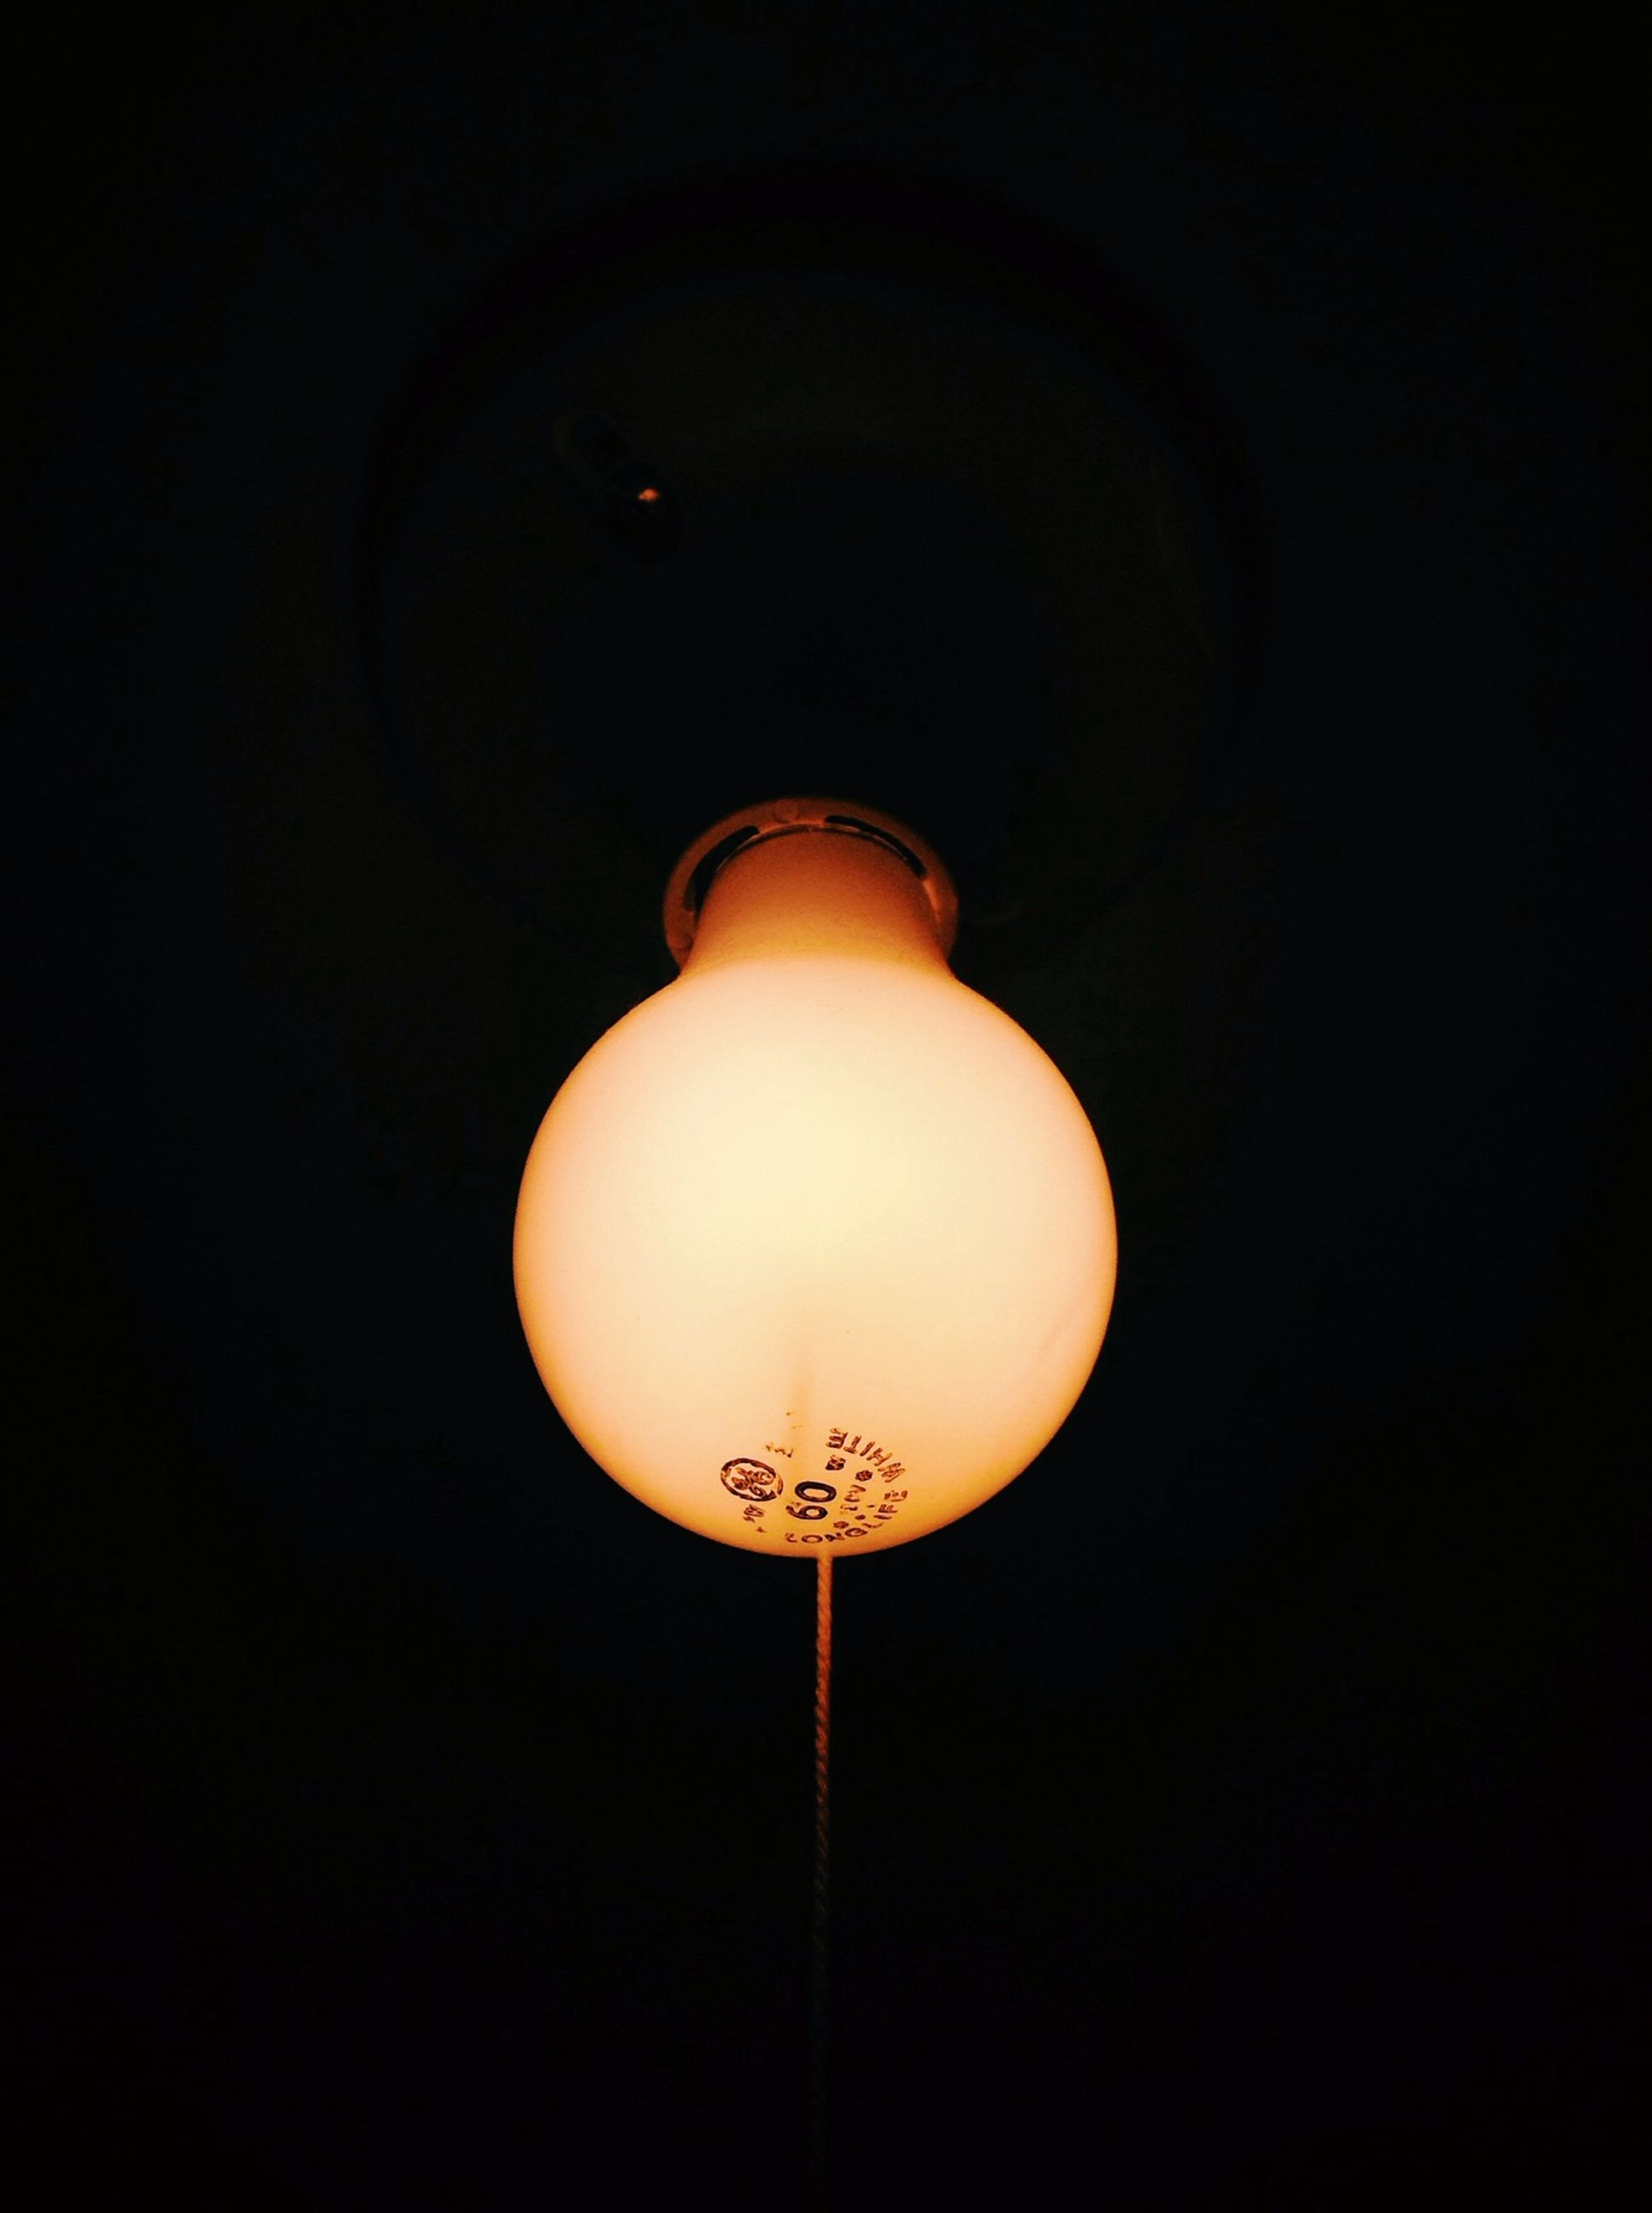 lighting equipment, illuminated, electricity, low angle view, copy space, electric light, electric lamp, light bulb, street light, night, hanging, lamp, indoors, sphere, dark, technology, ceiling, glowing, studio shot, no people